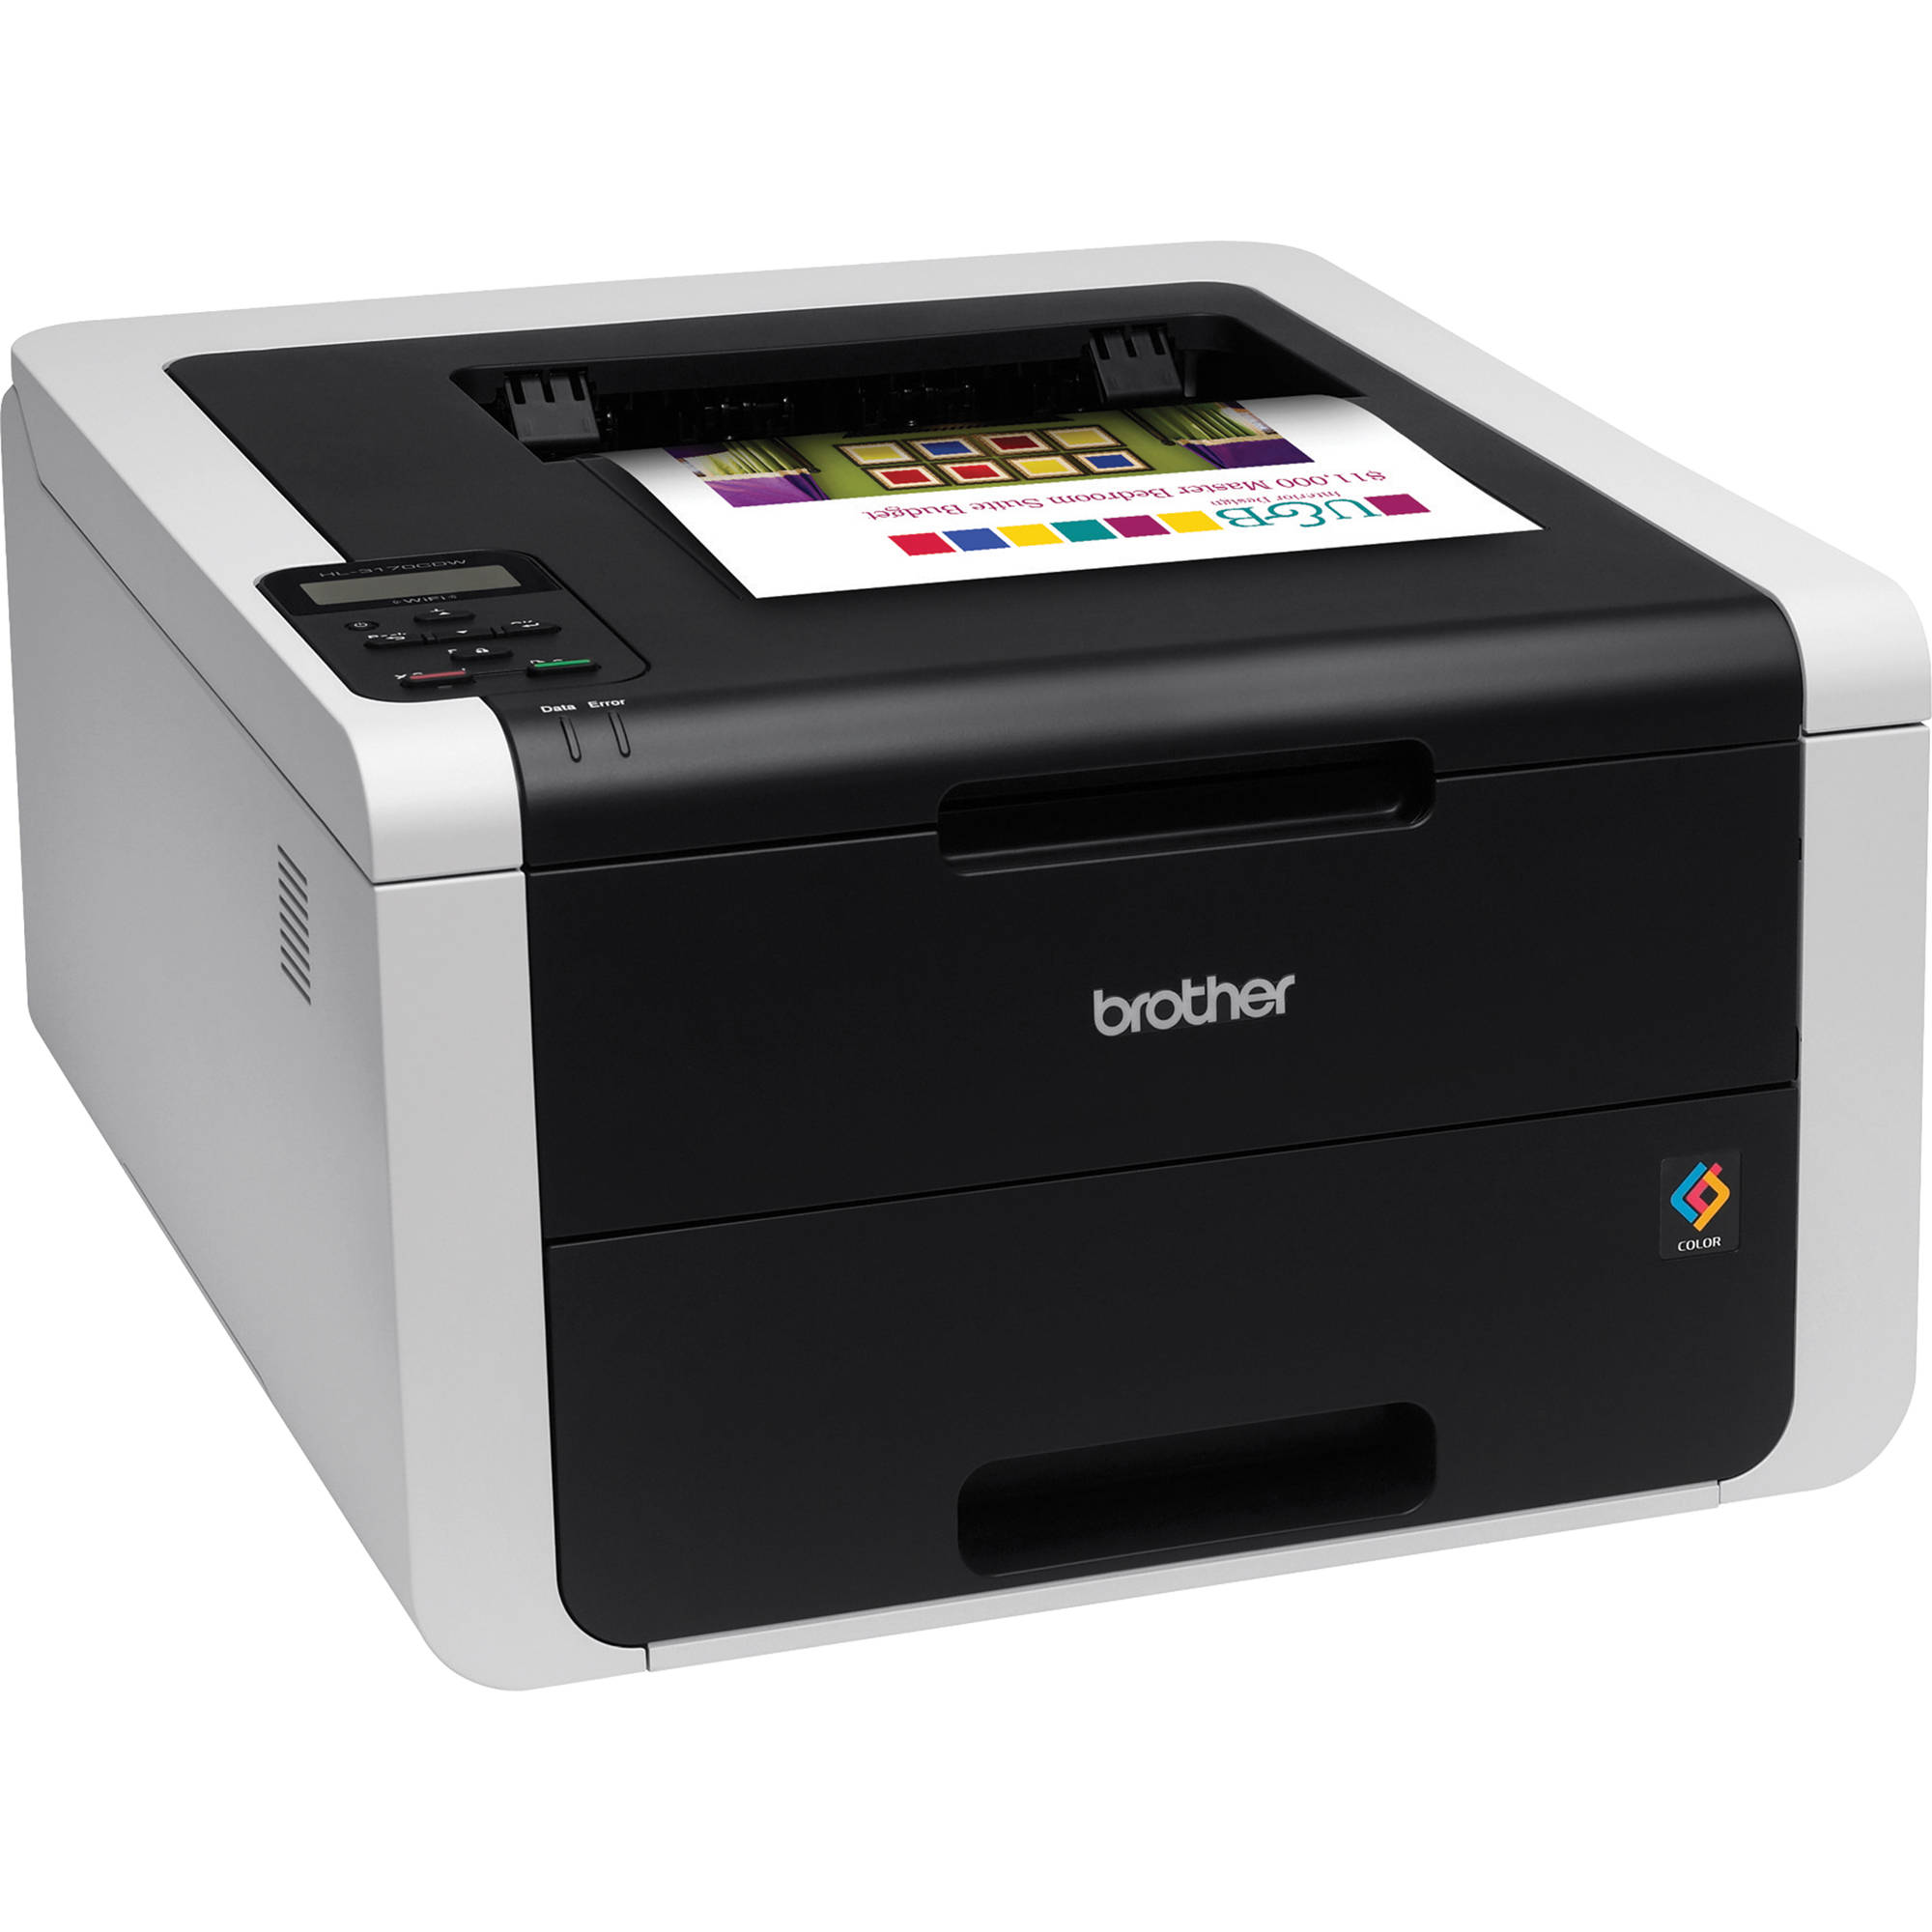 Brother HL-3170CDW Wireless Color Laser Printer with Extra Black